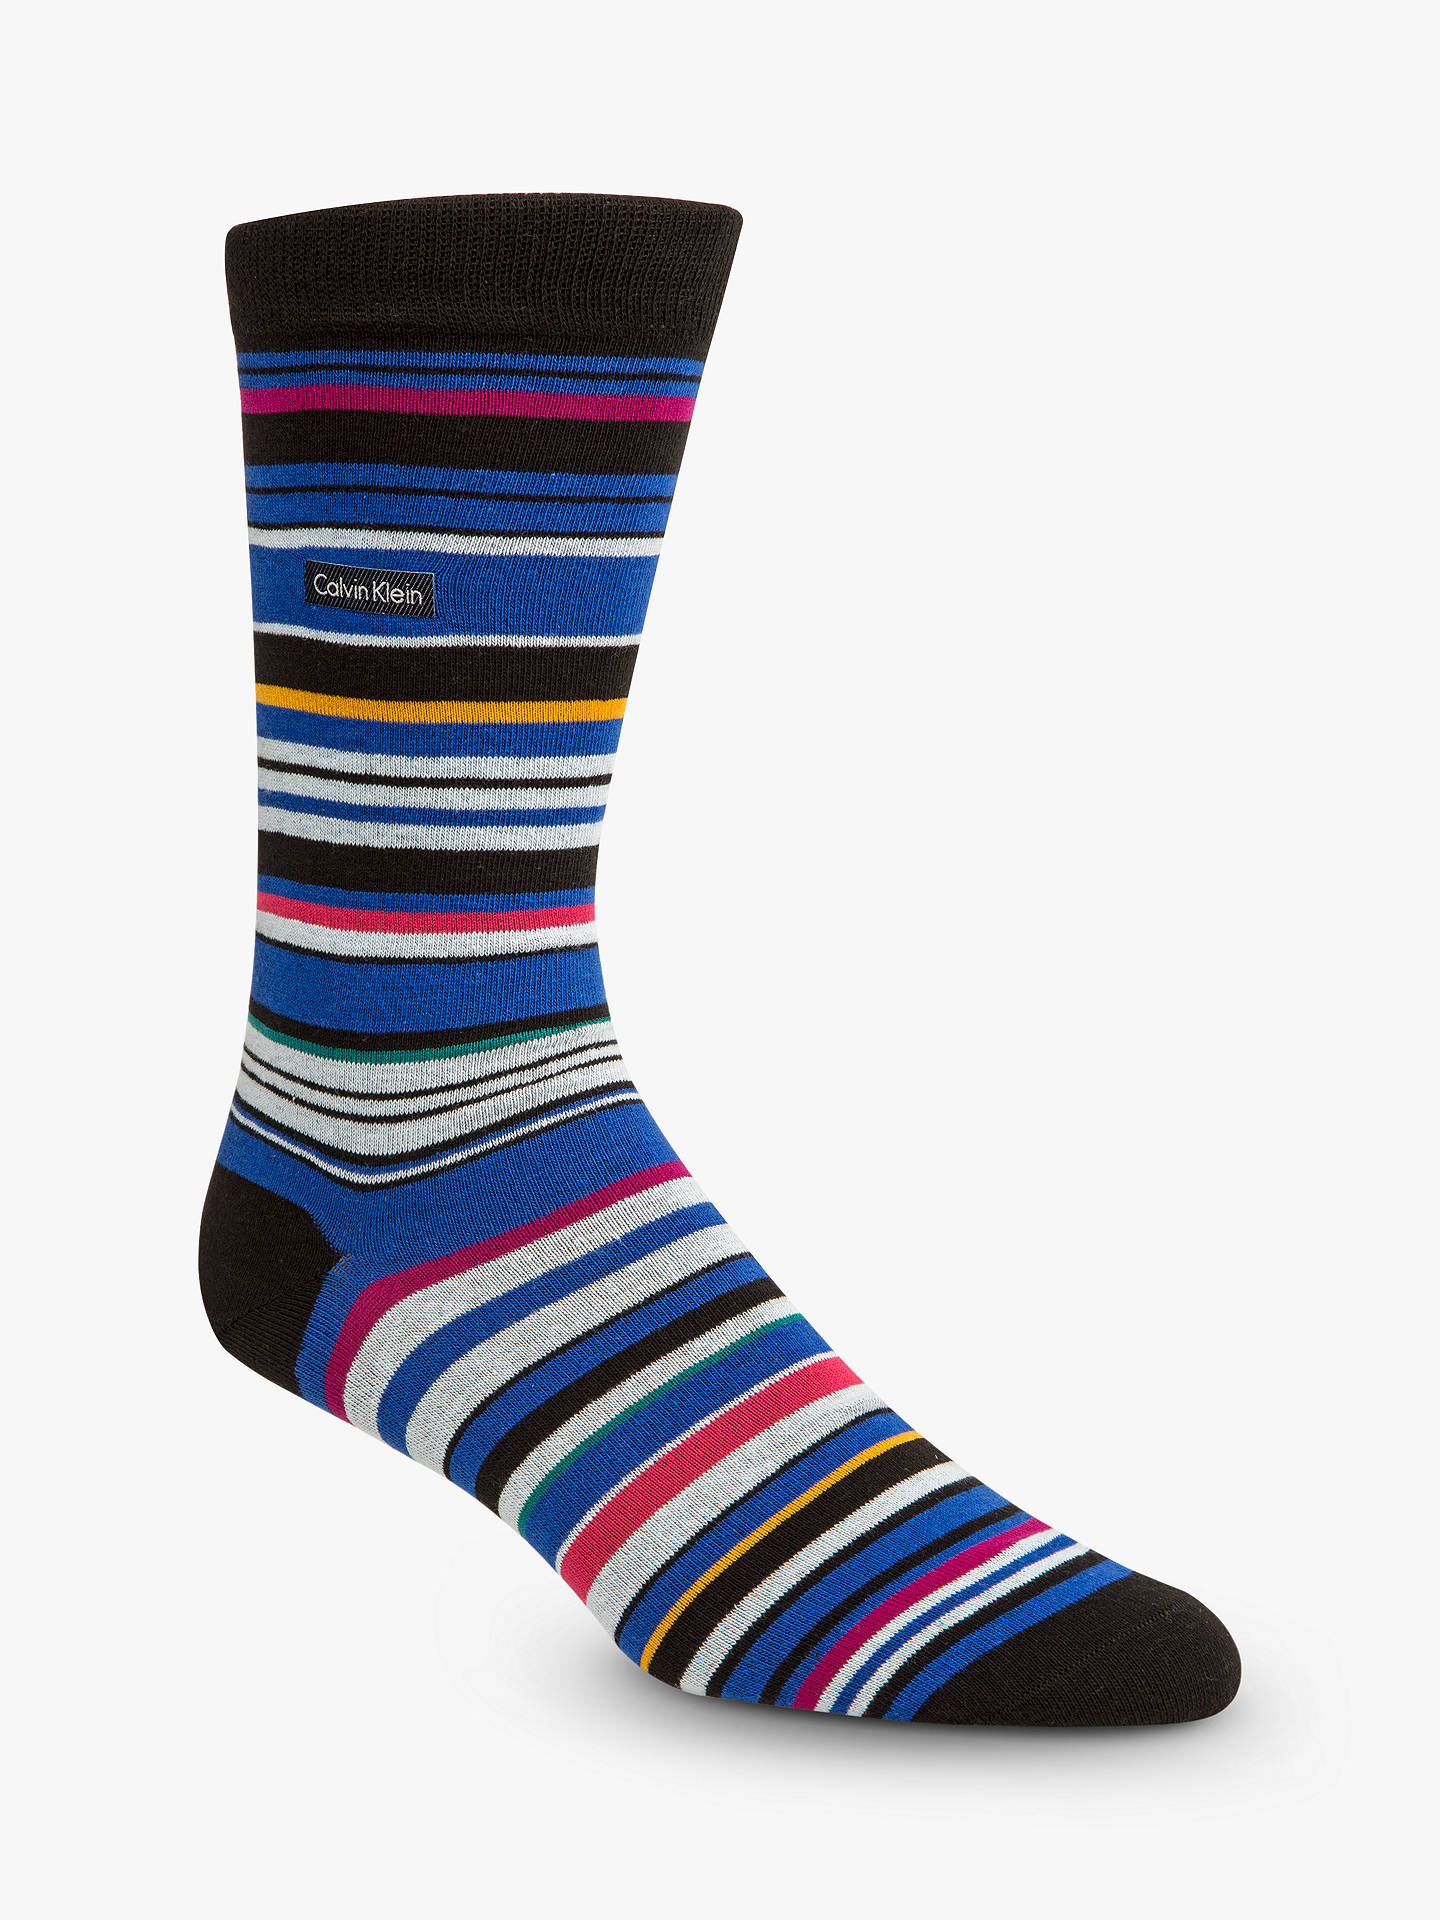 BuyCalvin Klein Stripe Socks, One Size, Blue/Multi Online at johnlewis.com